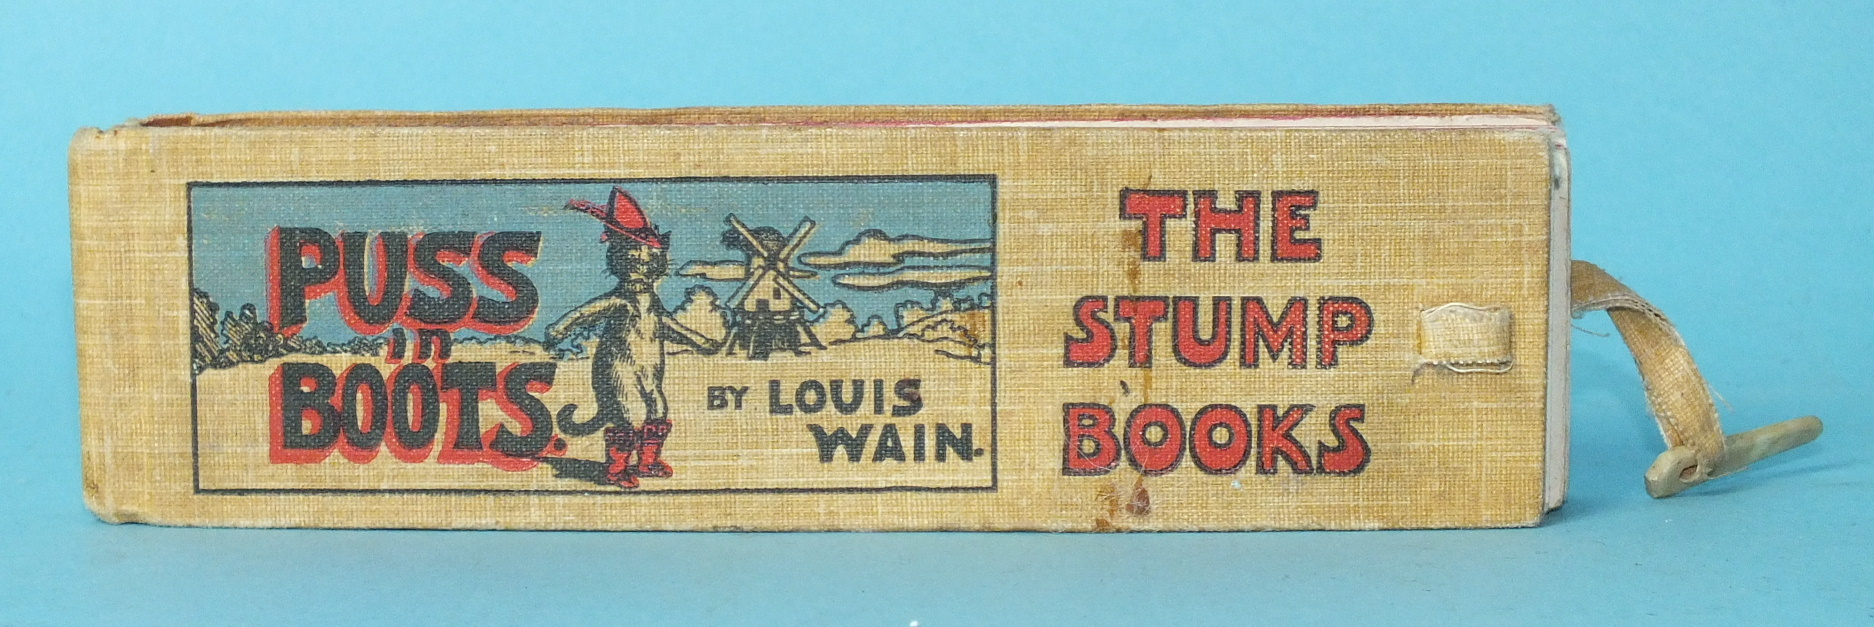 "Lot 22 - Wain (Louis), Puss in Boots, ""The Stump Books"", 15 col plts with separate text plts, pic cl gt, with"